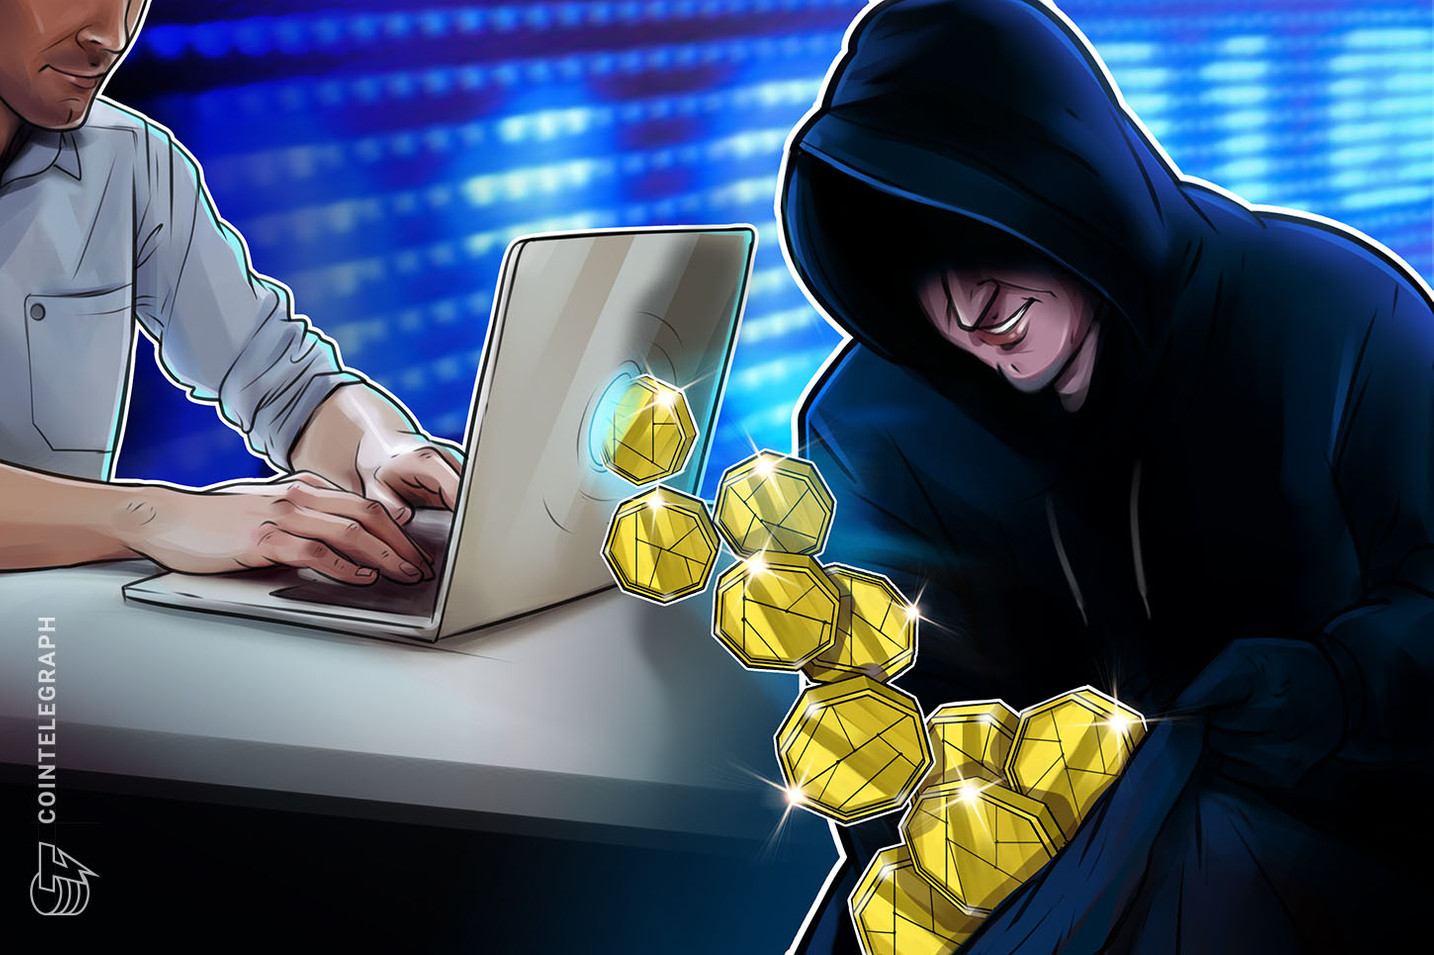 IT Contractor Stole $38,000 of Crypto While Fixing Company's Computers